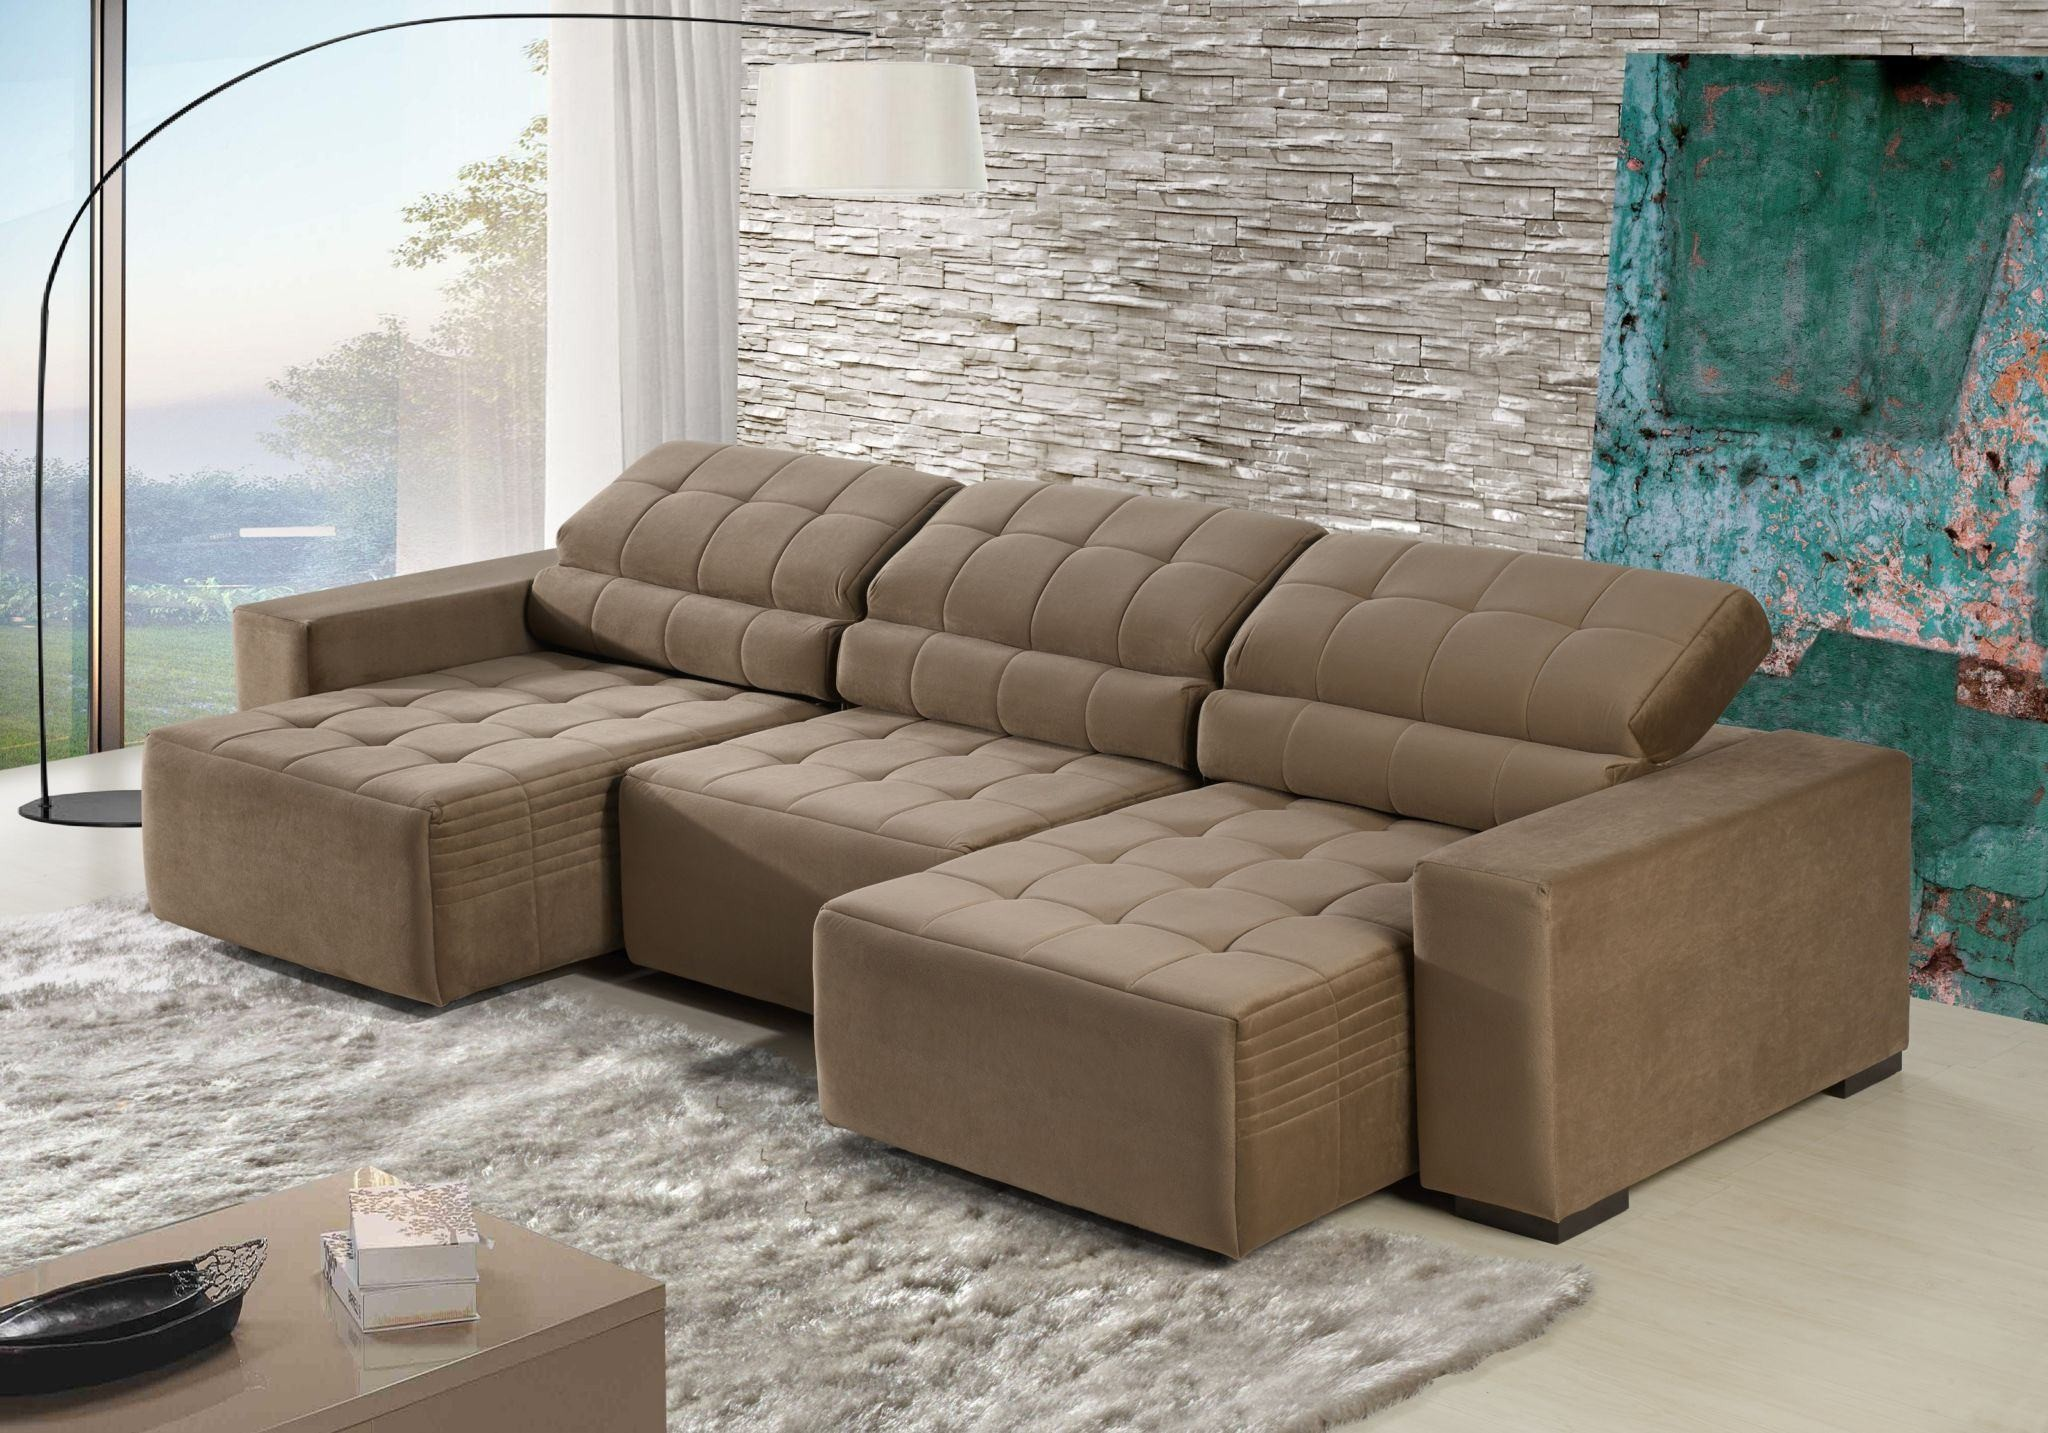 sofa retratil 4 lugares